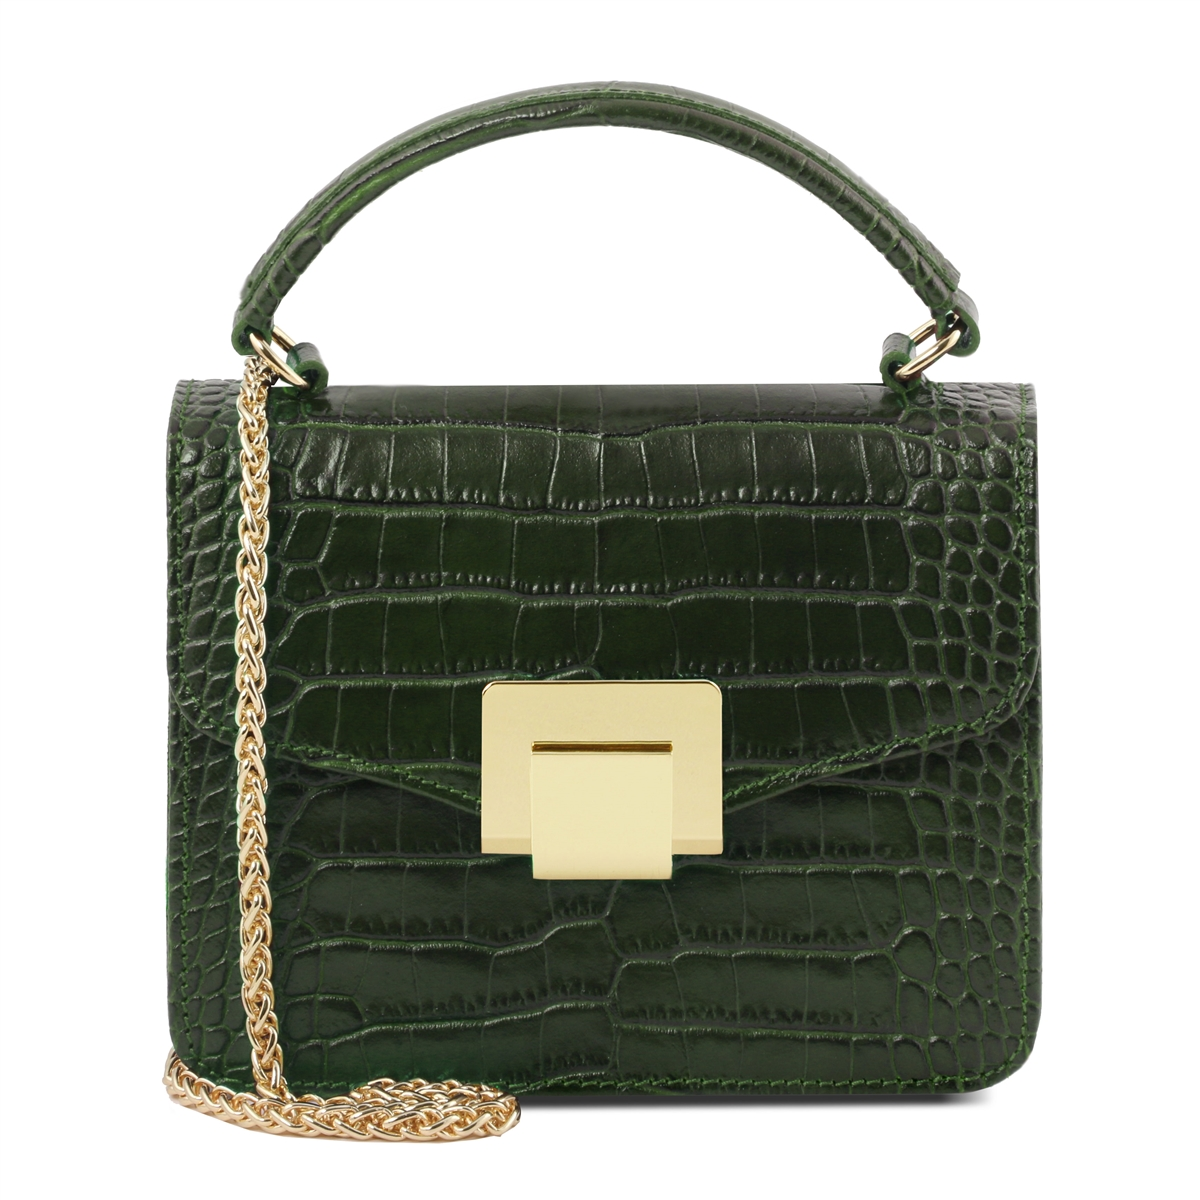 croc print mini bag forest green by tuscany leather. Black Bedroom Furniture Sets. Home Design Ideas